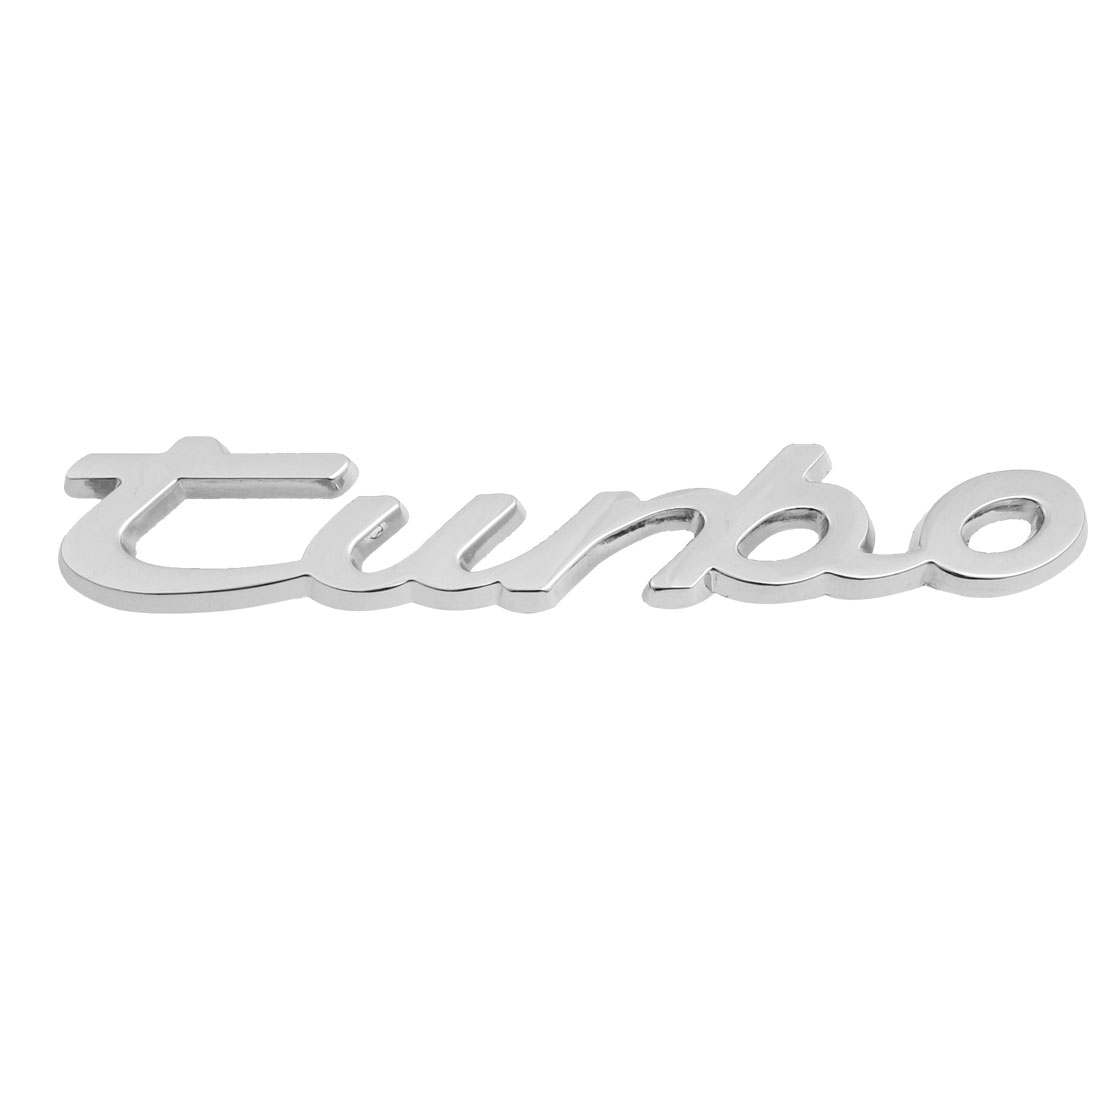 Car Truck Vehicle Front Grill 3D Badge Emblem Decoration Silver Tone